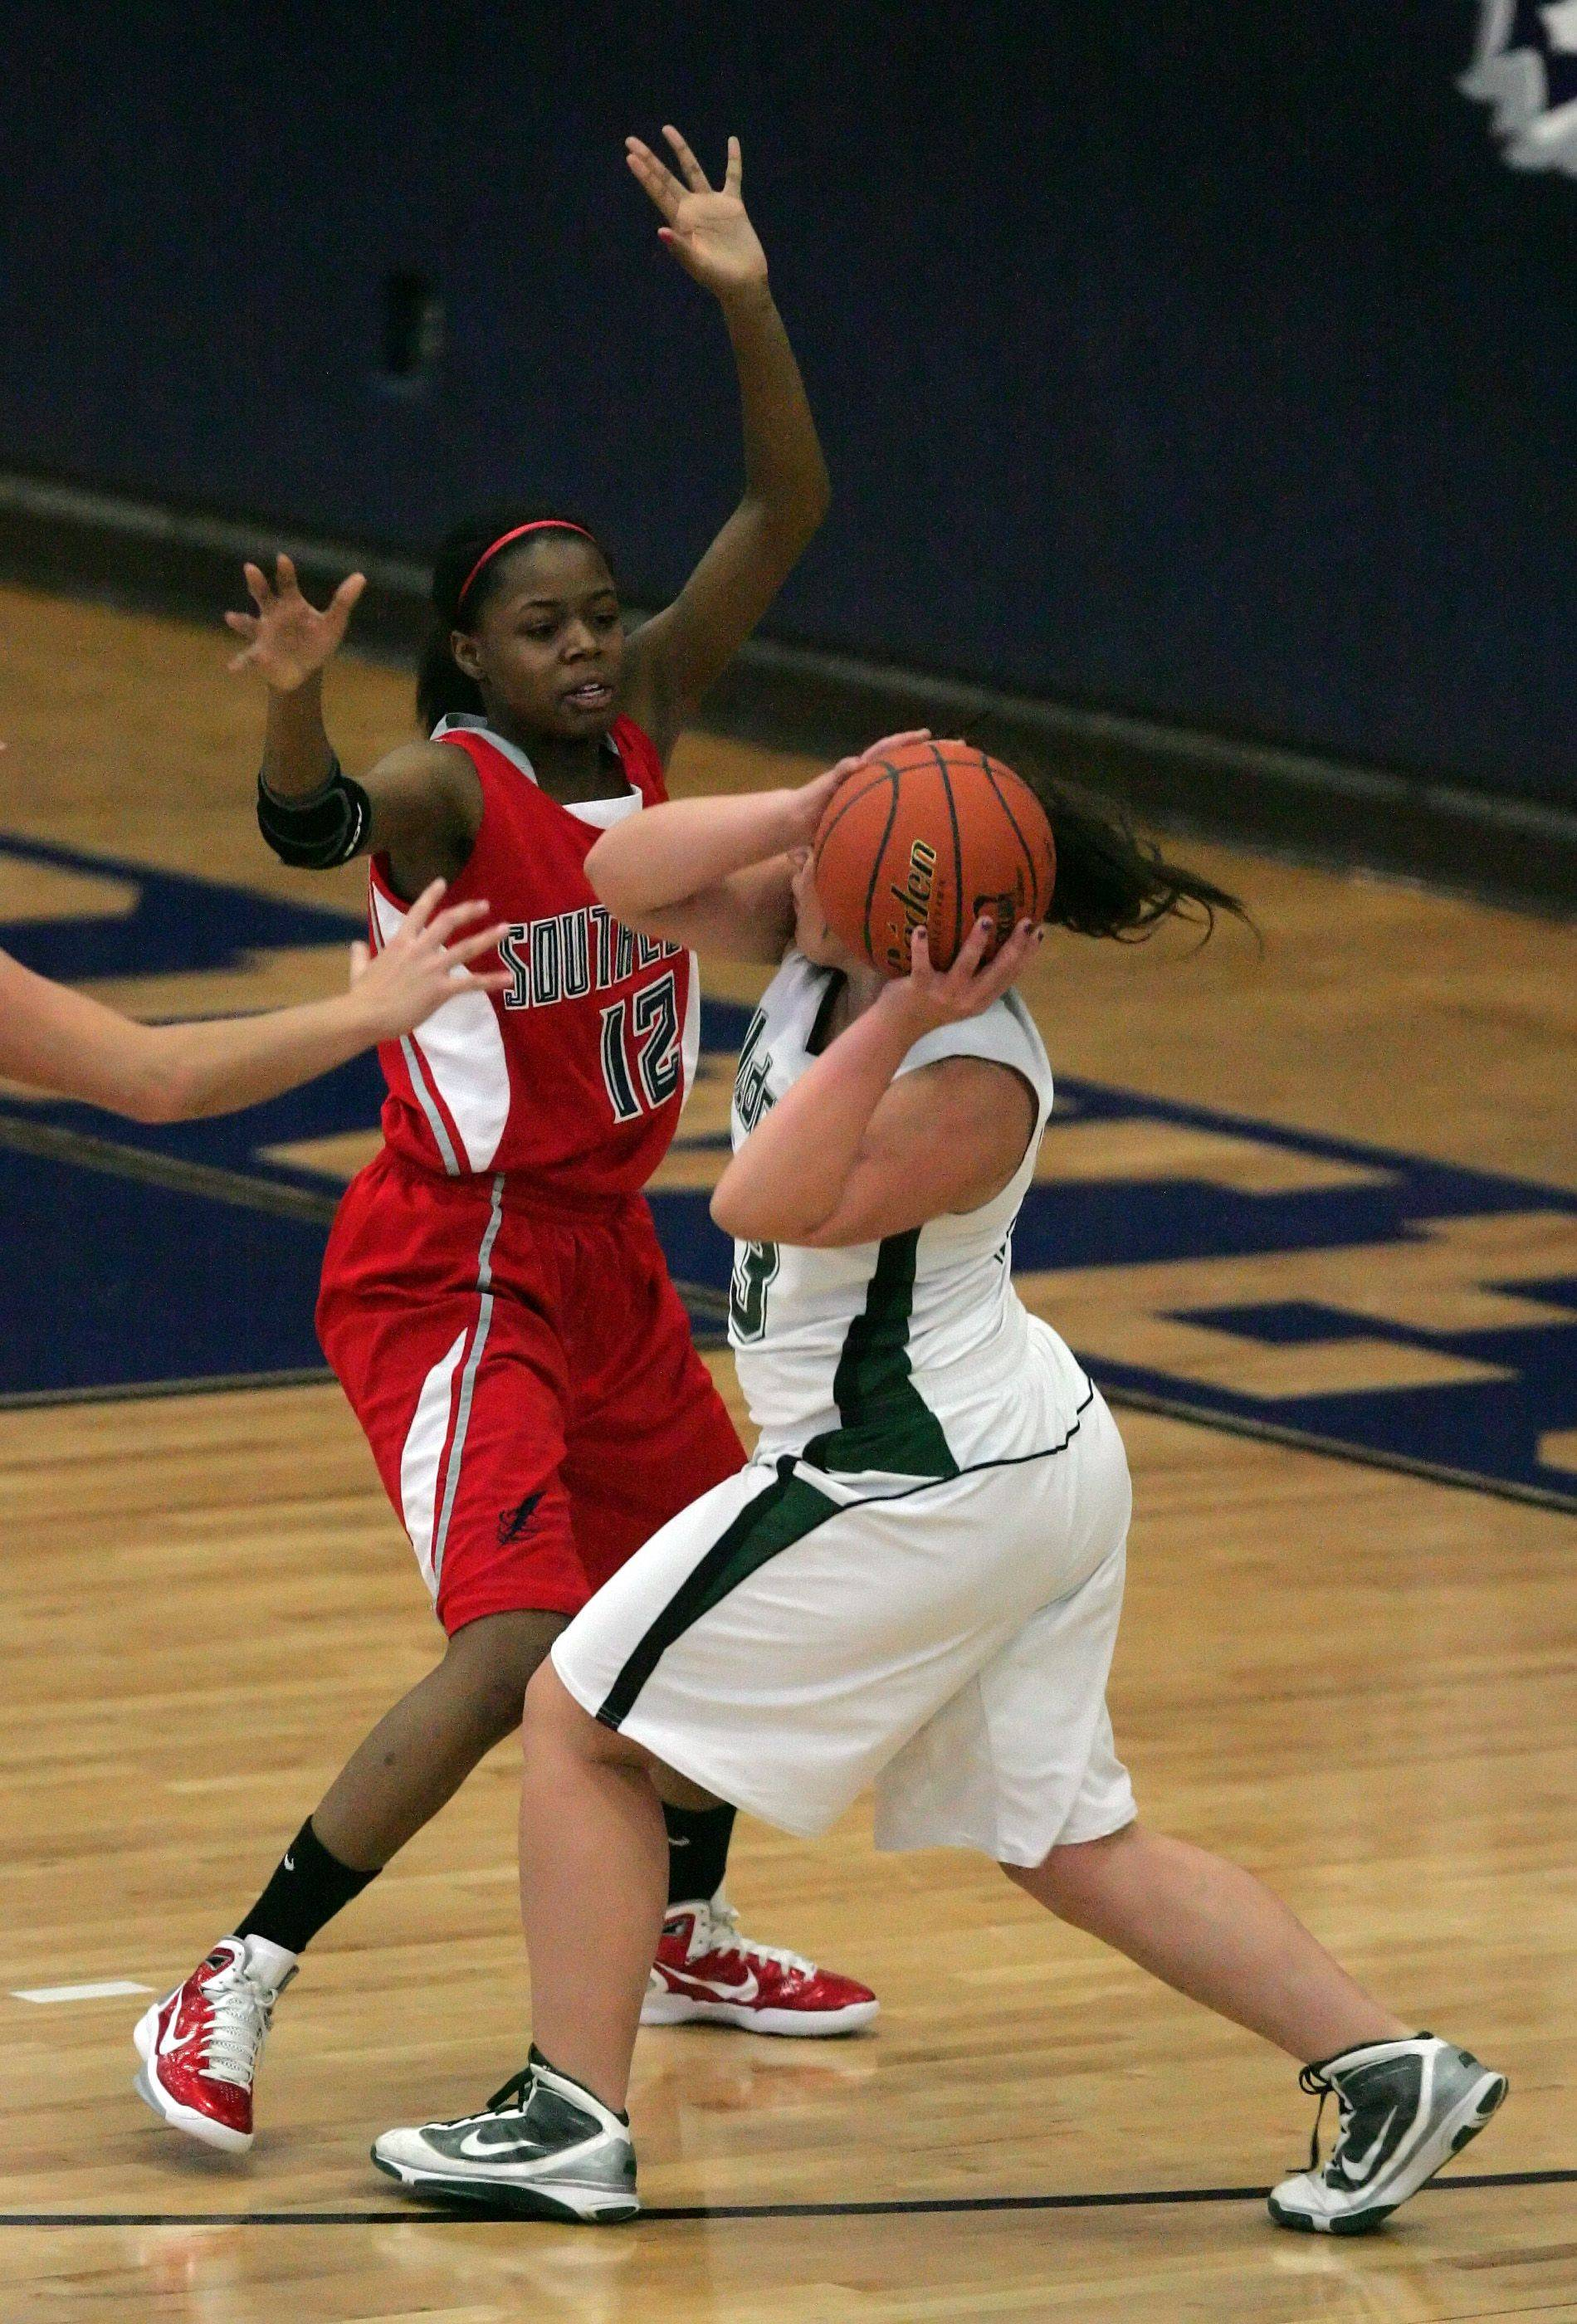 South Elgin guard Nicole Lewis, 12, puts on the pressure during South Elgin vs Plainfield Central girls basketball at the Wolves Winter Classic Basketball Tournament Tuesday, December 28, 2010 in Oswego.